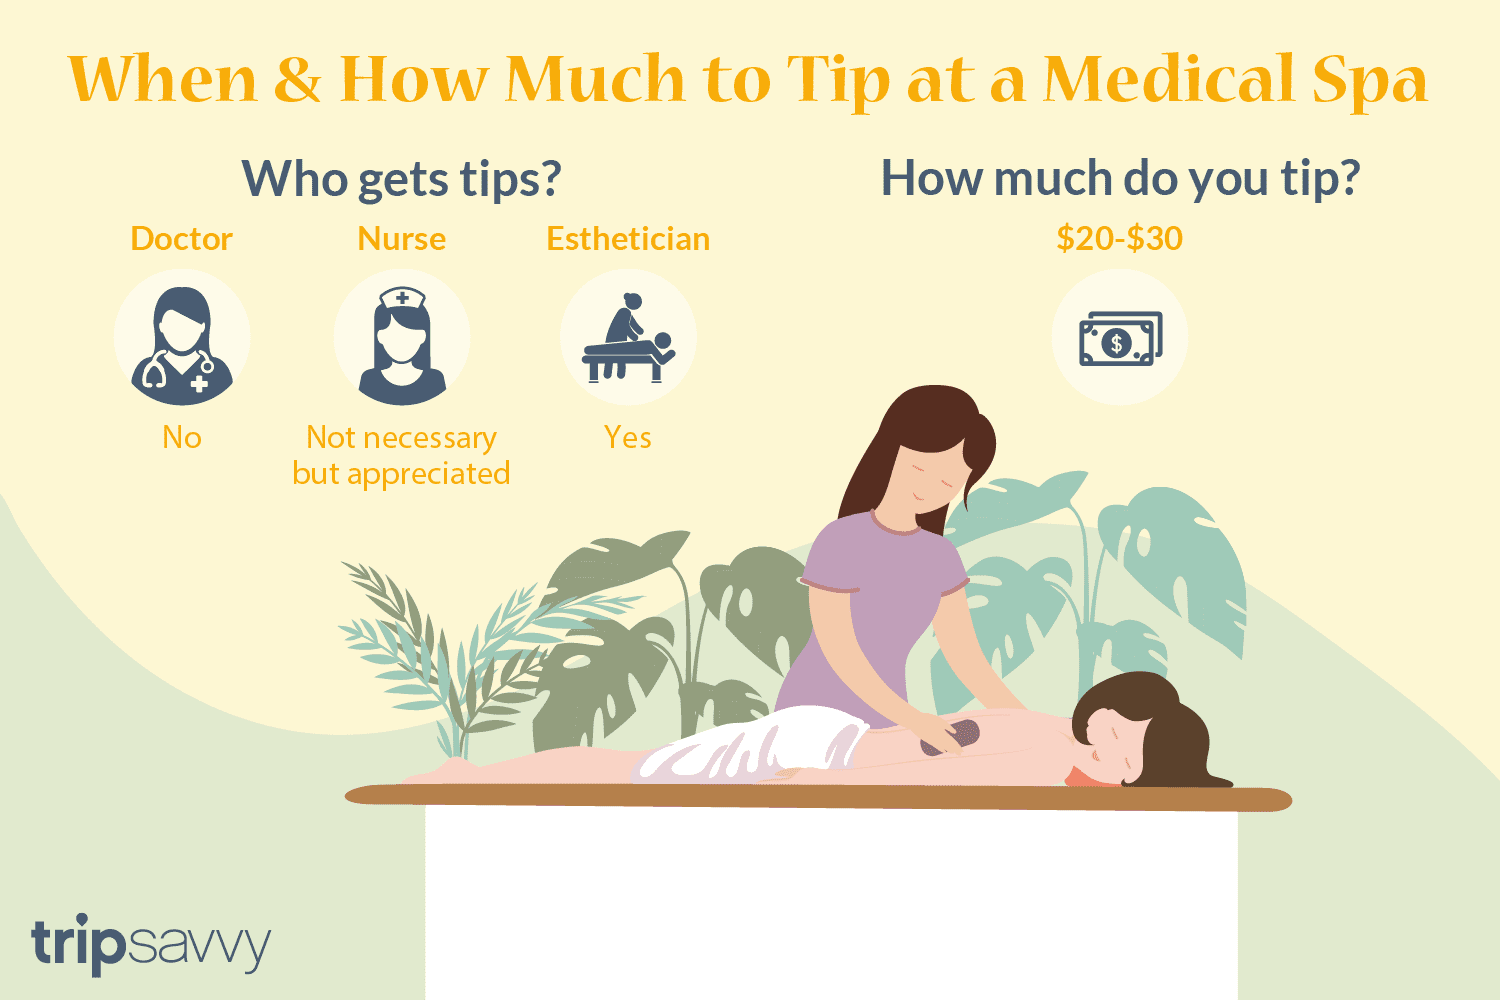 Should You Tip at a Medical Spa?